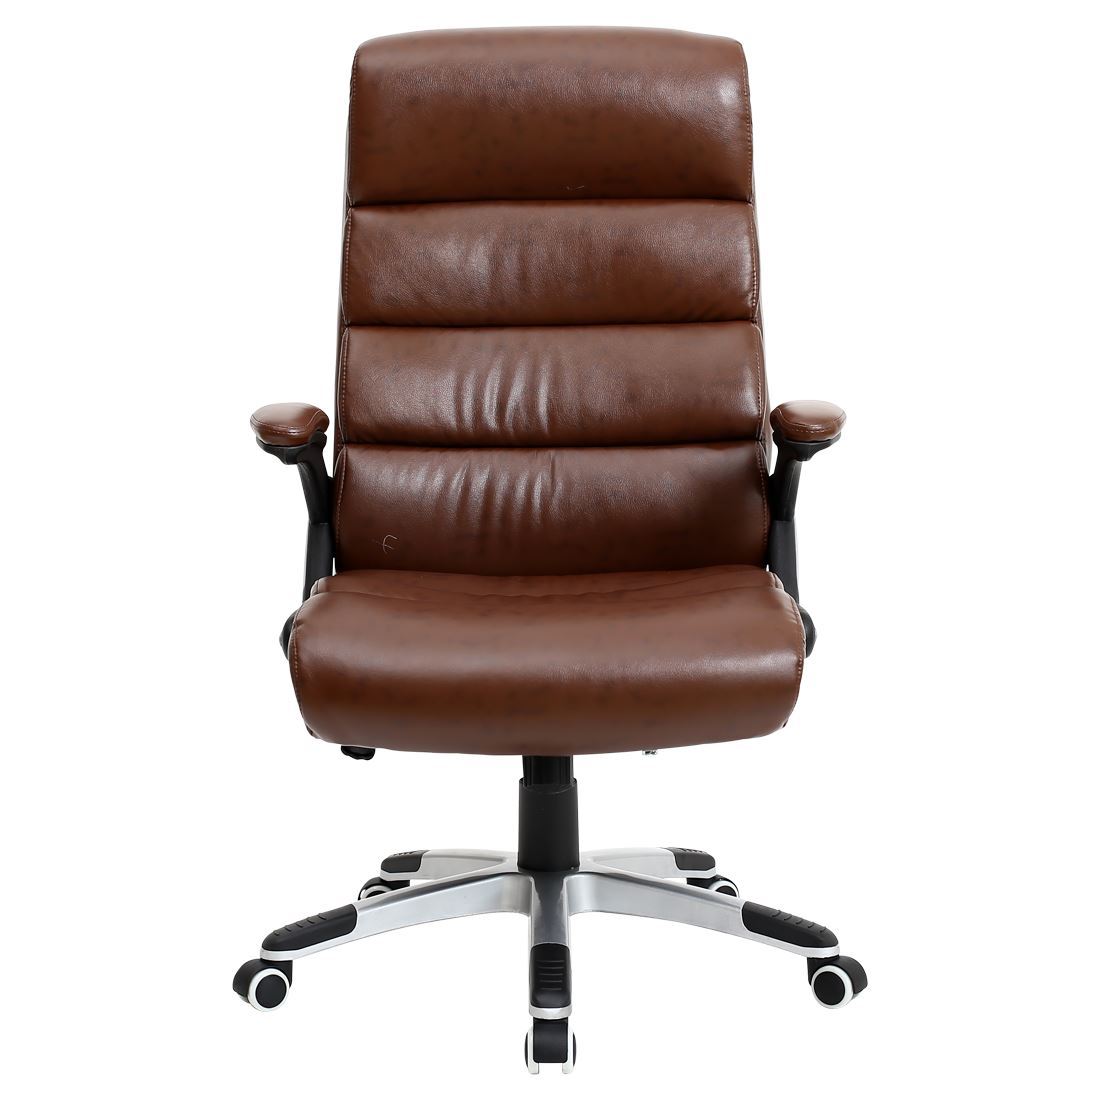 havana luxury reclining executive leather office desk chair high back swivel ebay. Black Bedroom Furniture Sets. Home Design Ideas